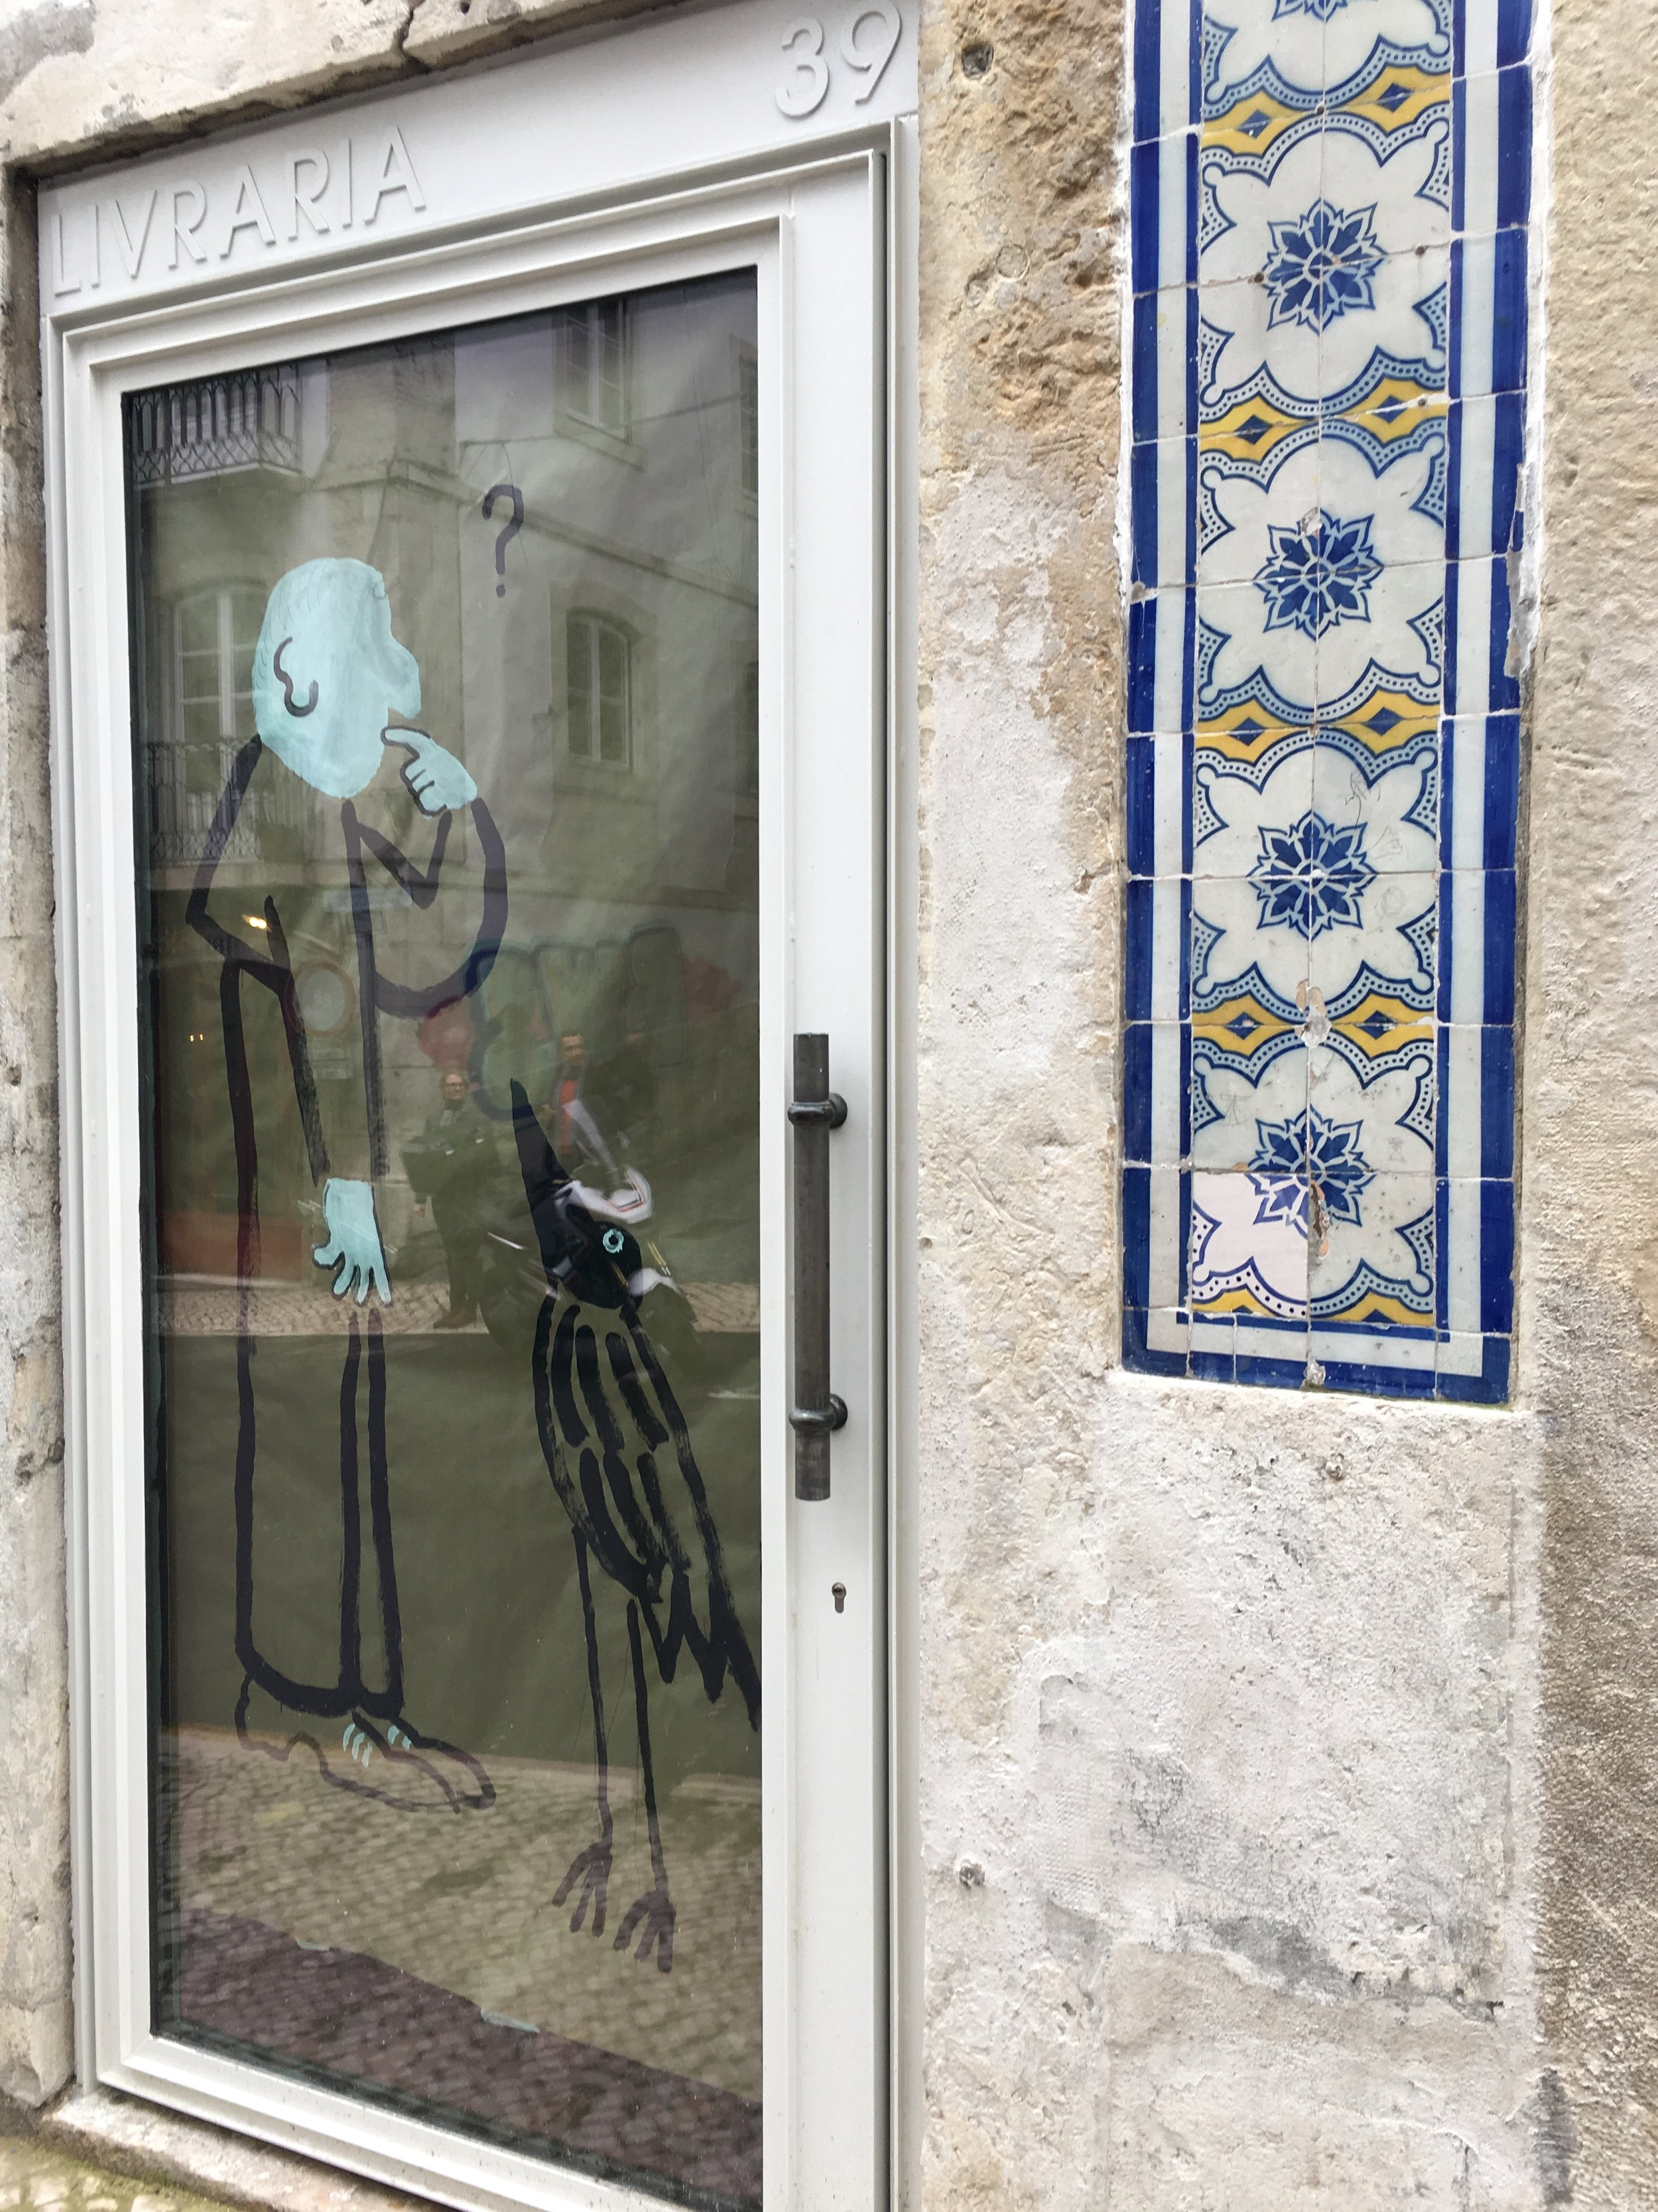 A flourish of wall tiles on a deliciously humorous art gallery R, with its window obscured during an exhibition change. Rua da Esperança Lisboa. (photography J. Cook)